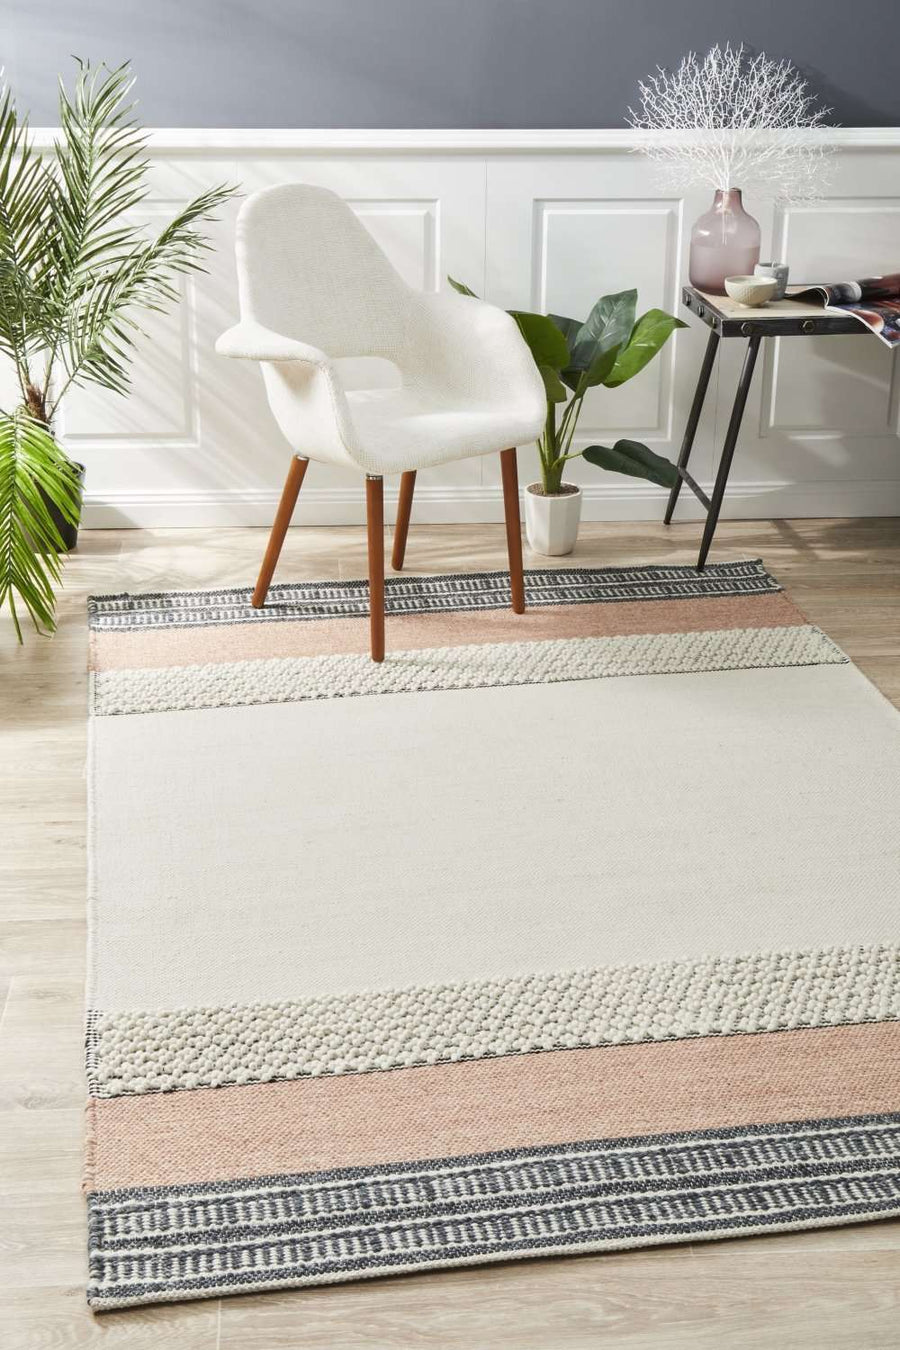 Elche Textured Rug - Peach